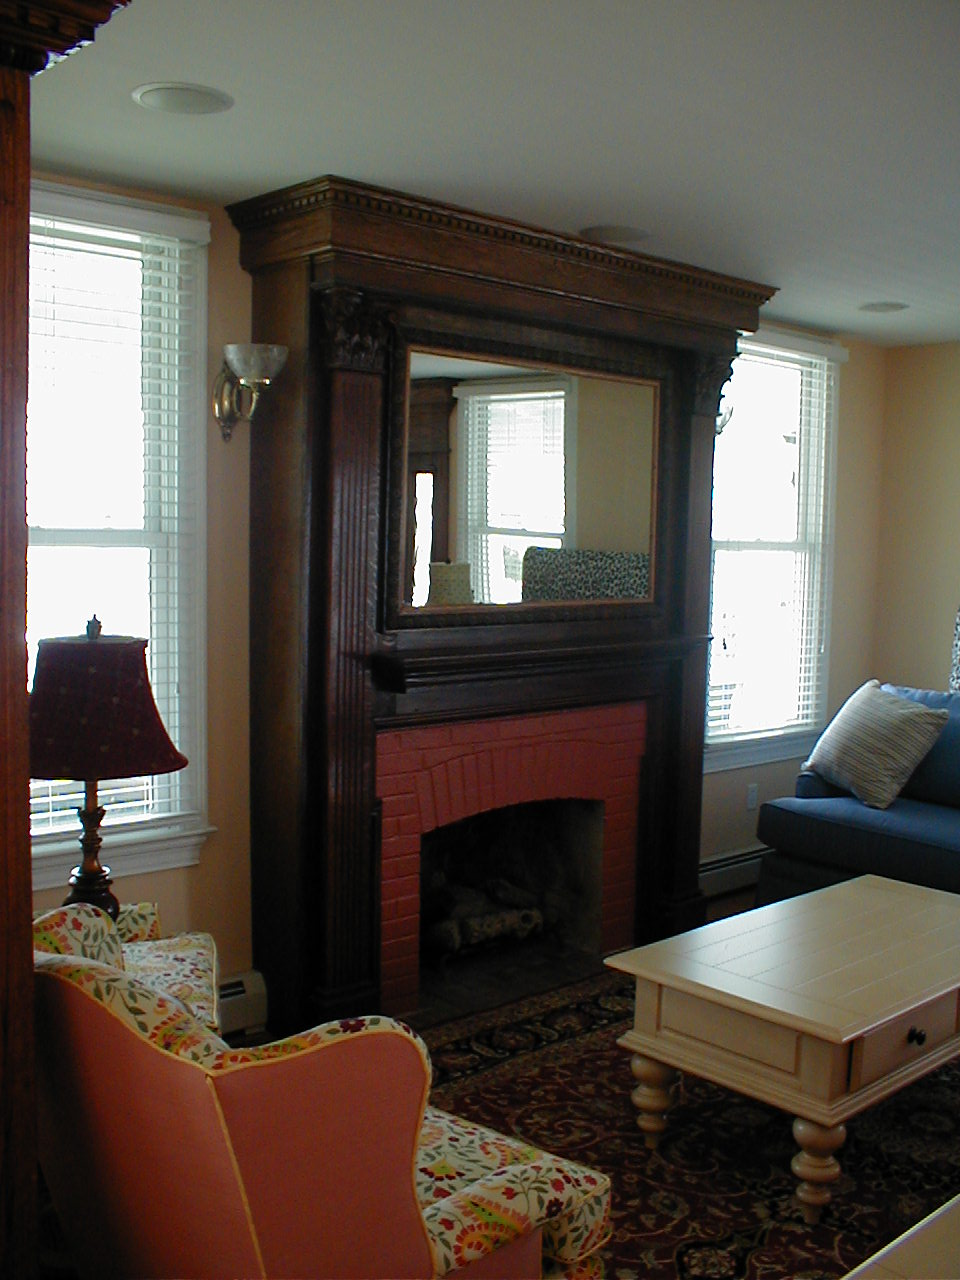 Stained Mantle: Design Built Victorian Mantle out of Salvage Chestnut Wood, Stained in Old Word Color. Installed Plasma TV behind Two Way Mirror for TV Watching without Losing Elegance of Mantle.